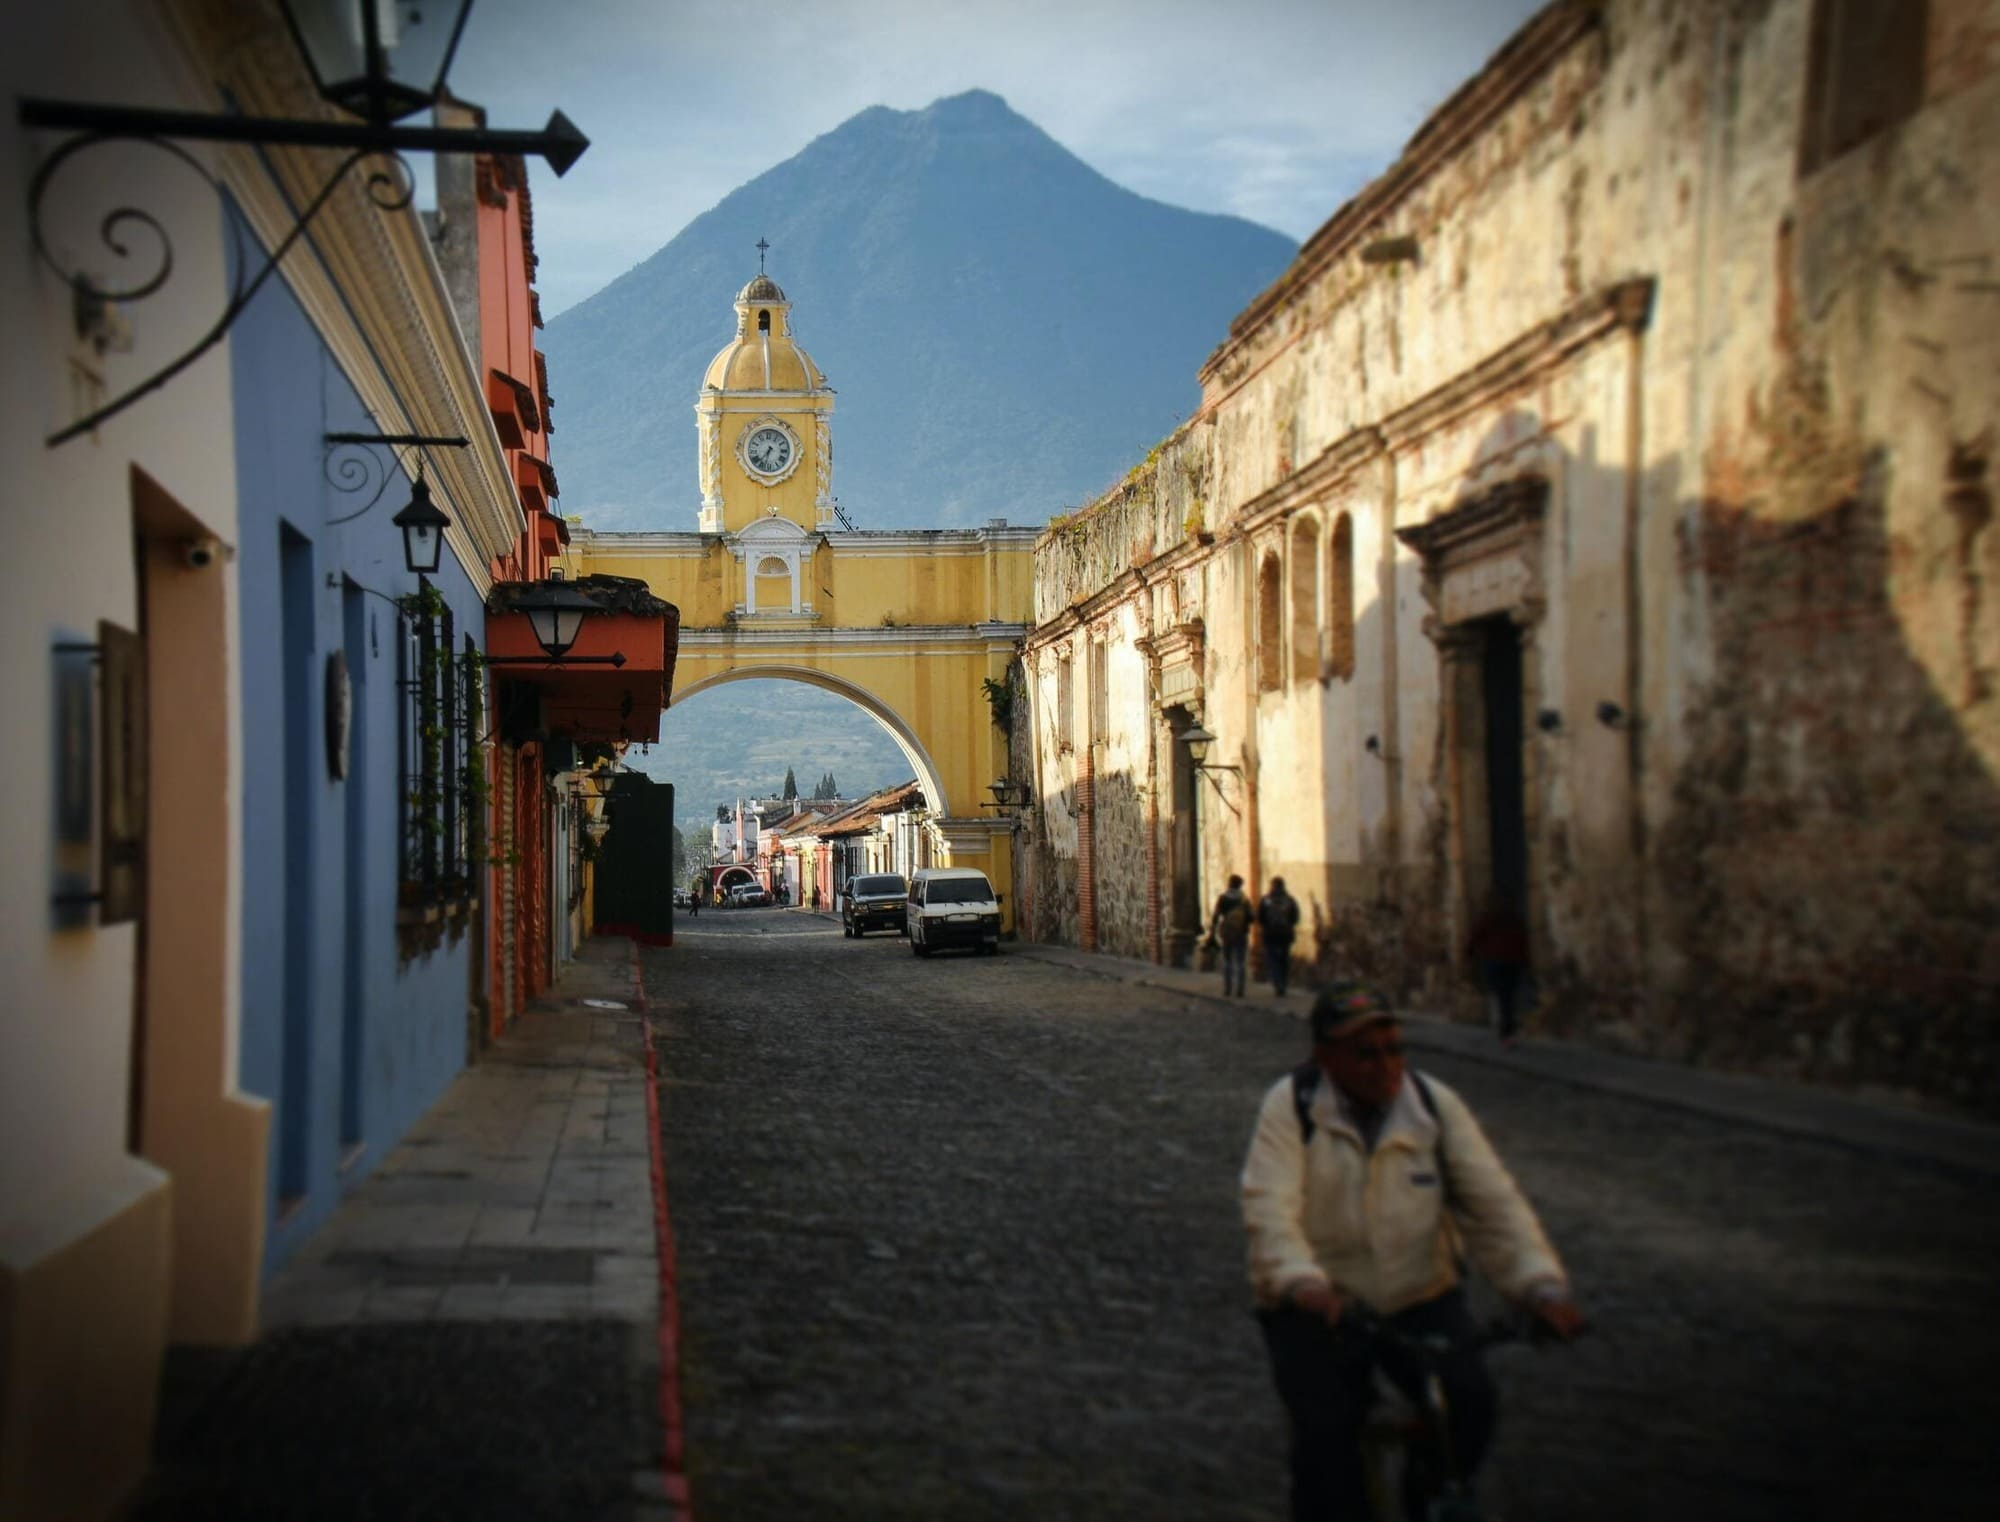 The city Anitgua, Guatemala, is on the list of UNESCO of world heritage sites.